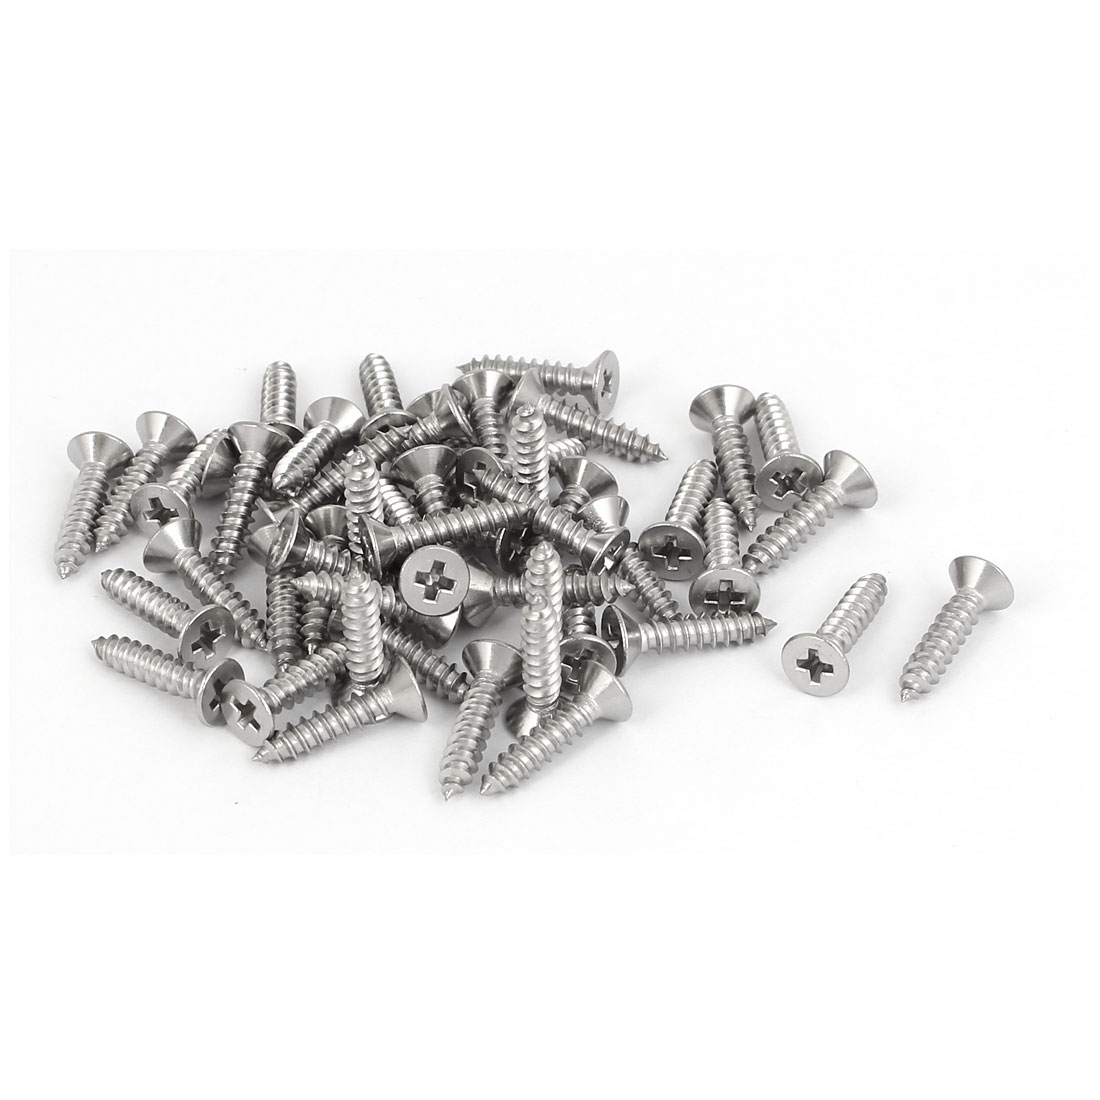 50 Pcs M2.9x13mm 316 Stainless Steel Flat Head Phillips Self Tapping Screws